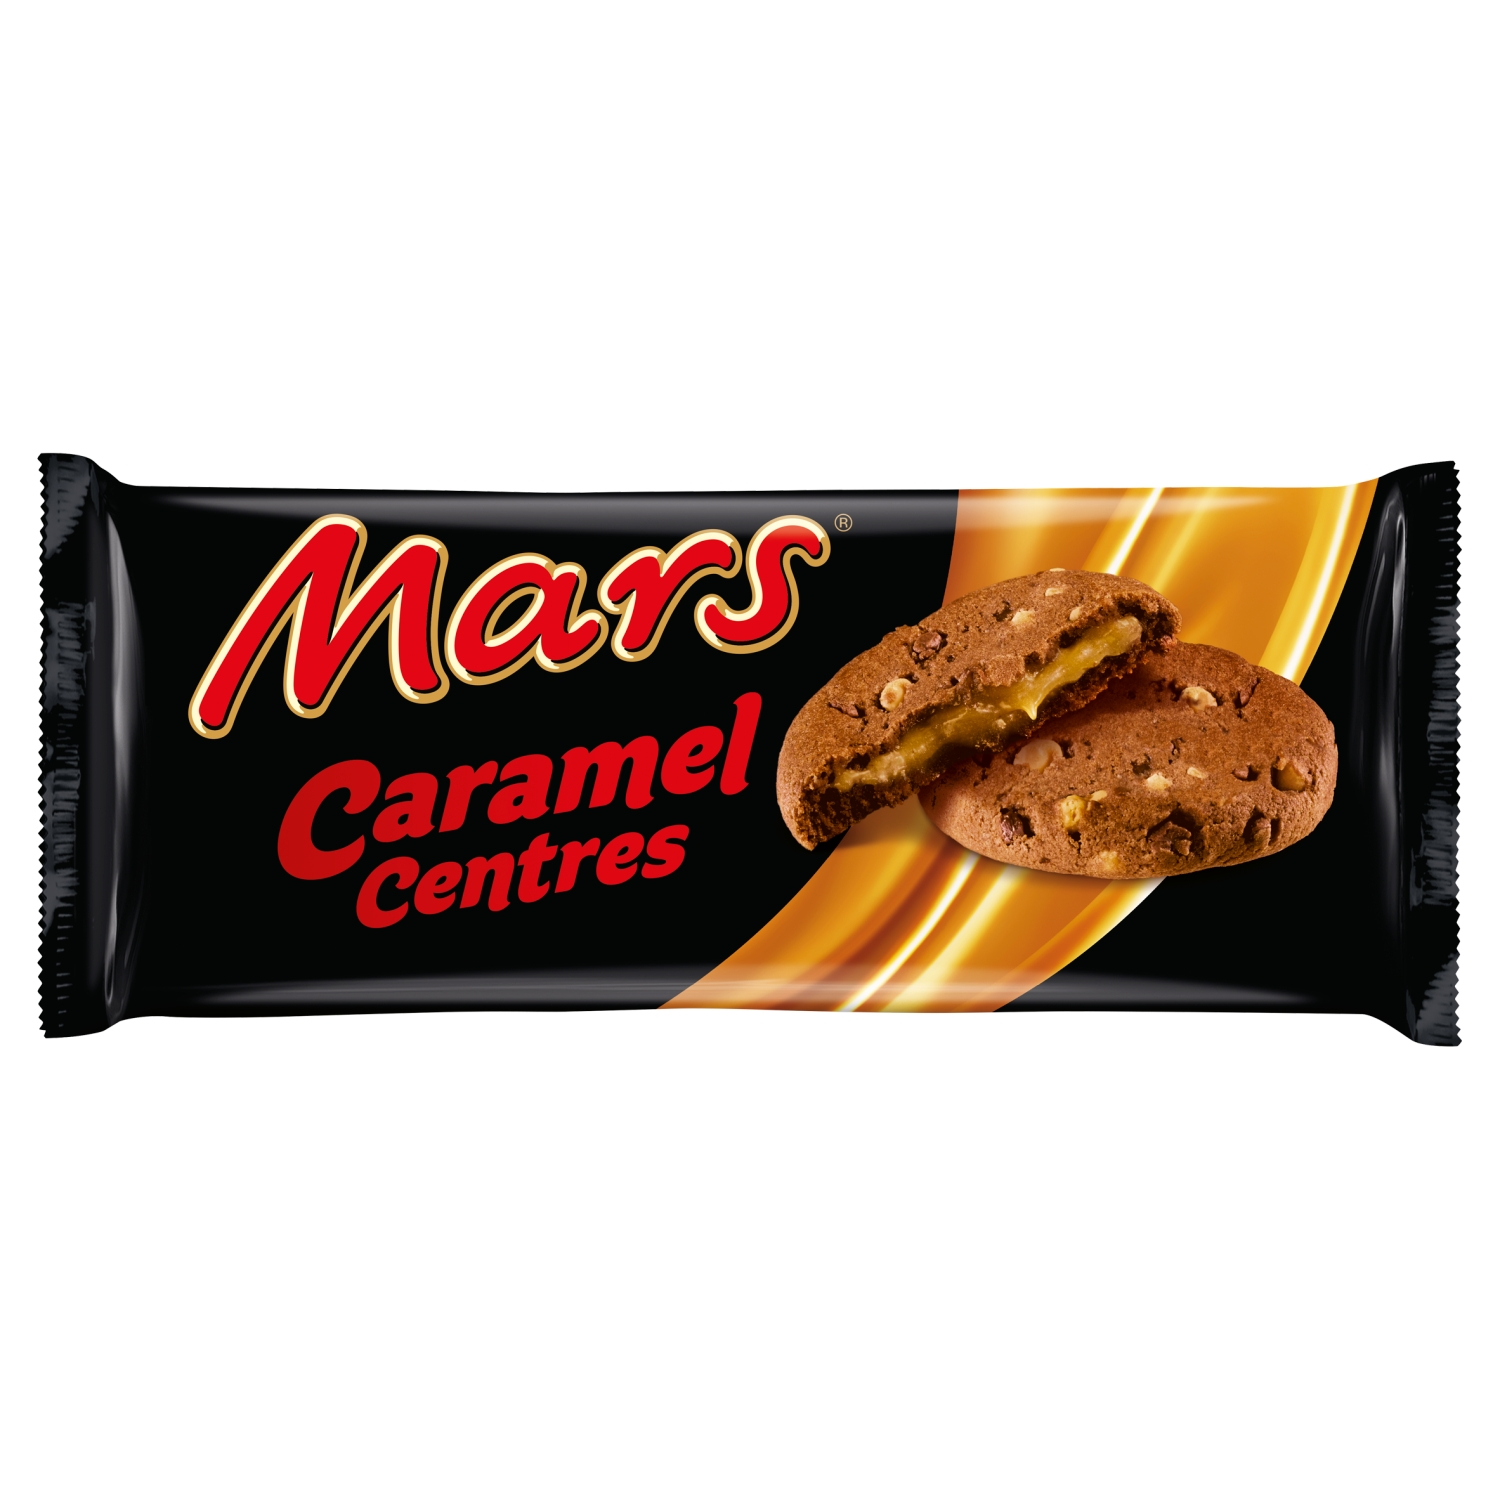 Mars Caramel Centres Biscuits 144g